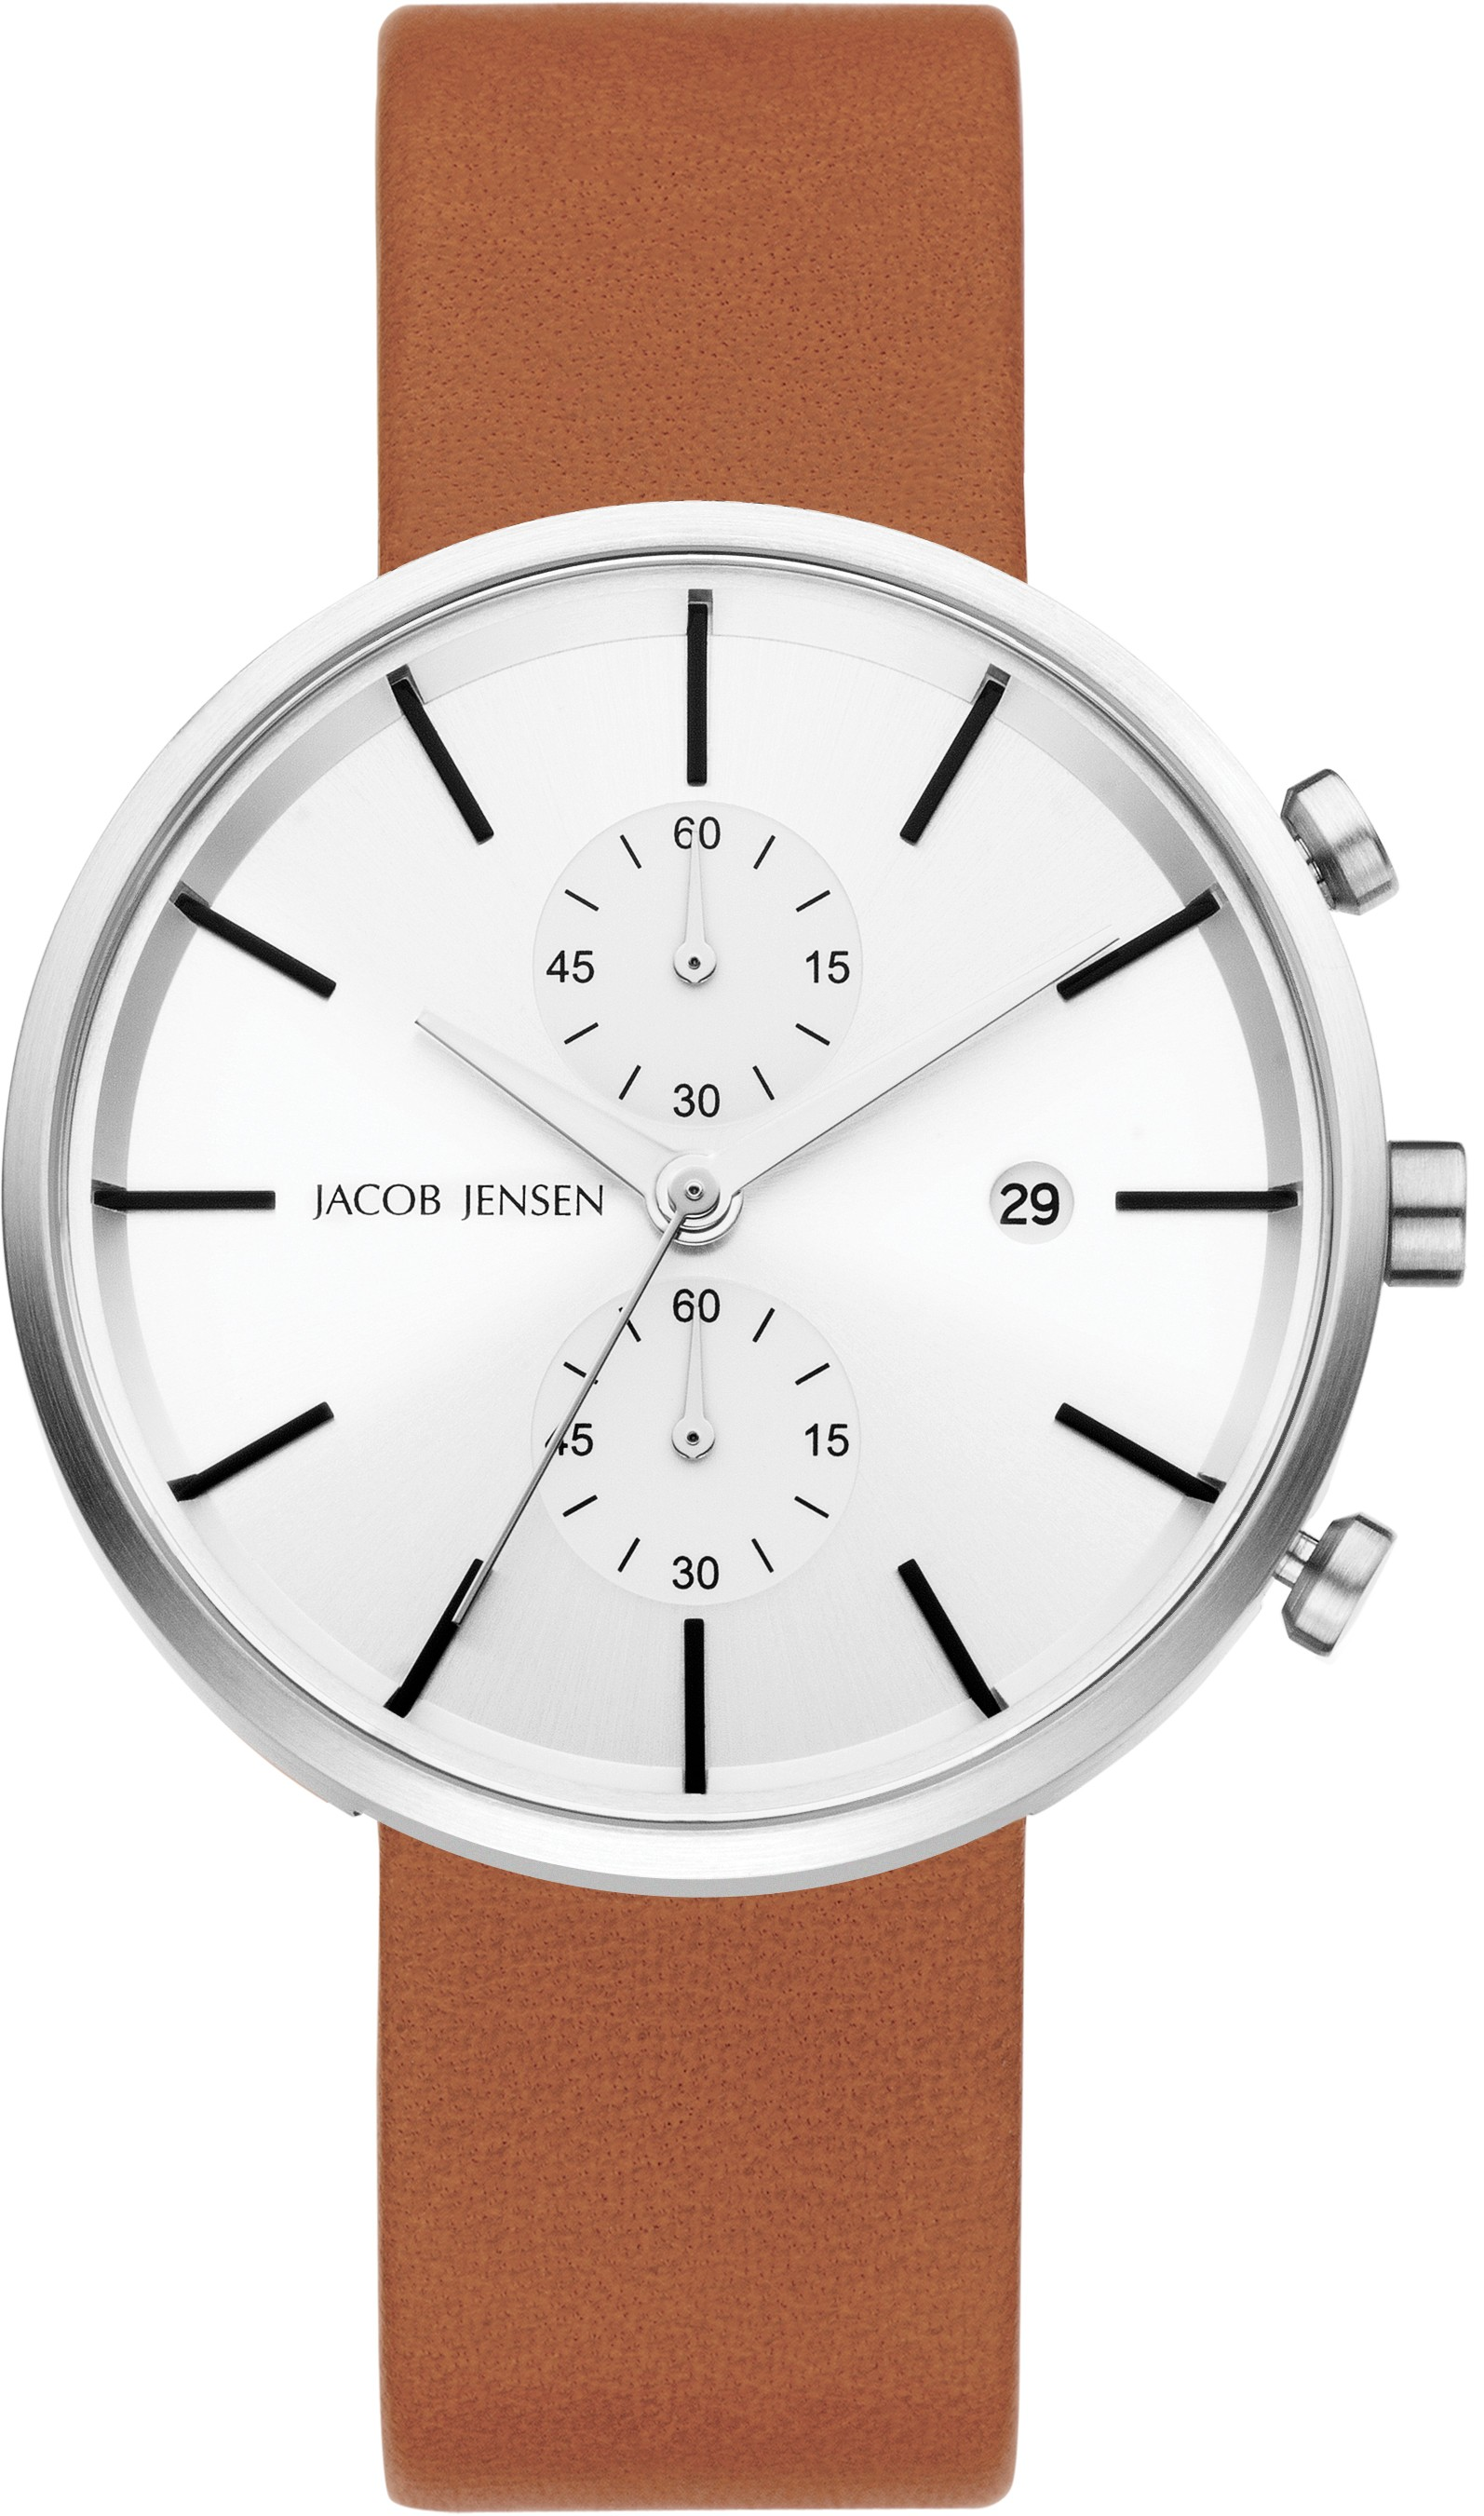 "Watch 622 Stainless Steel Sapphire Leather Strap Jacob Jensen ""linear"" Horloge"